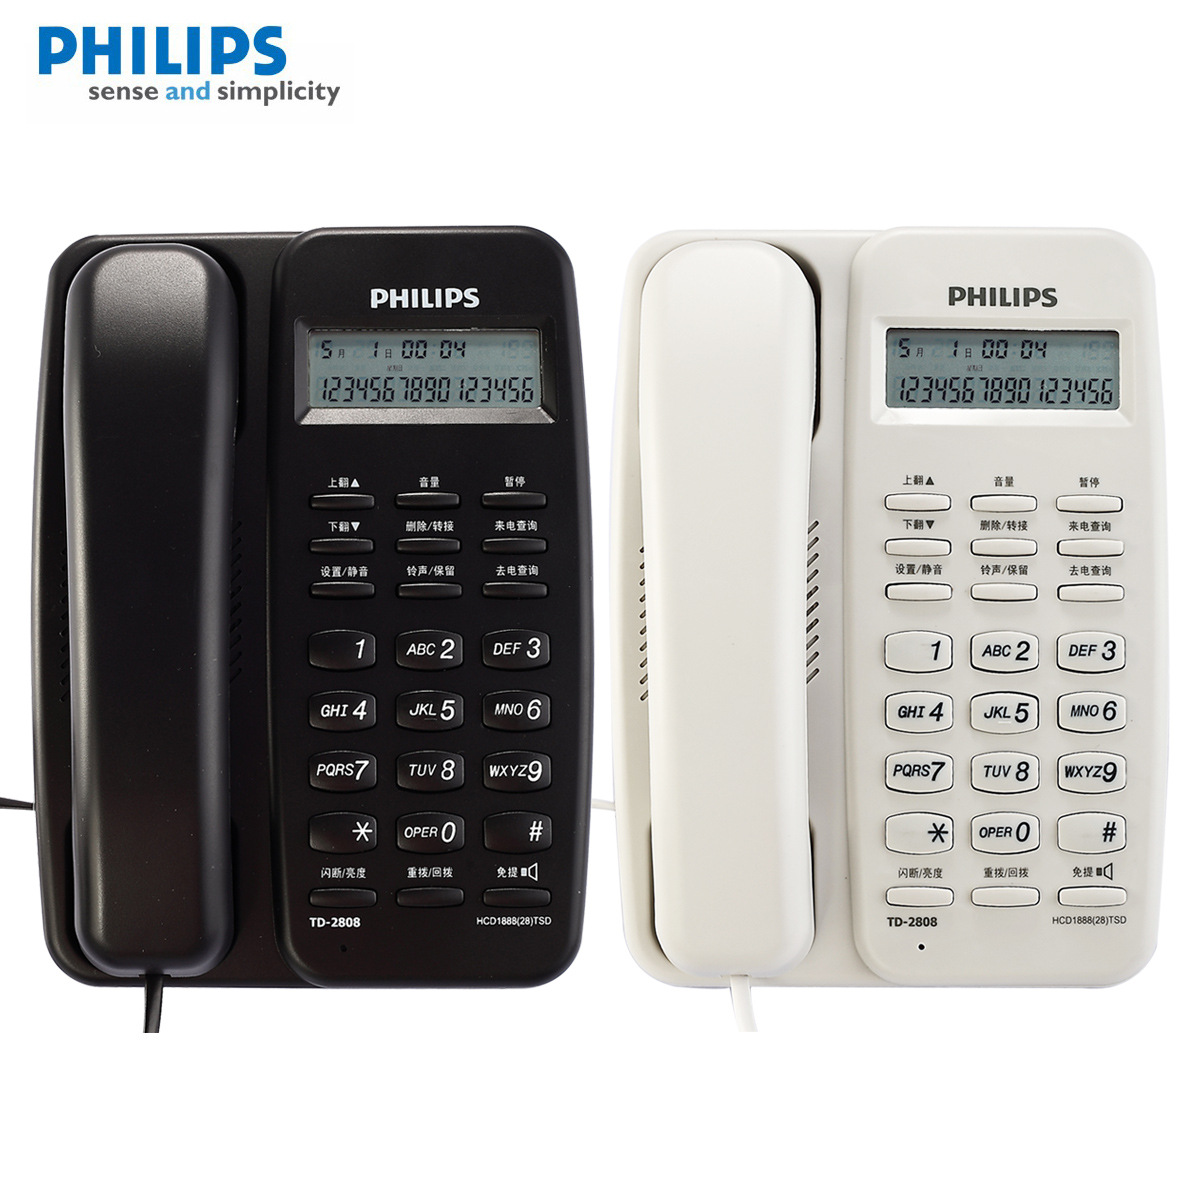 Philips telephone with caller ID td-2808 business battery free office phone